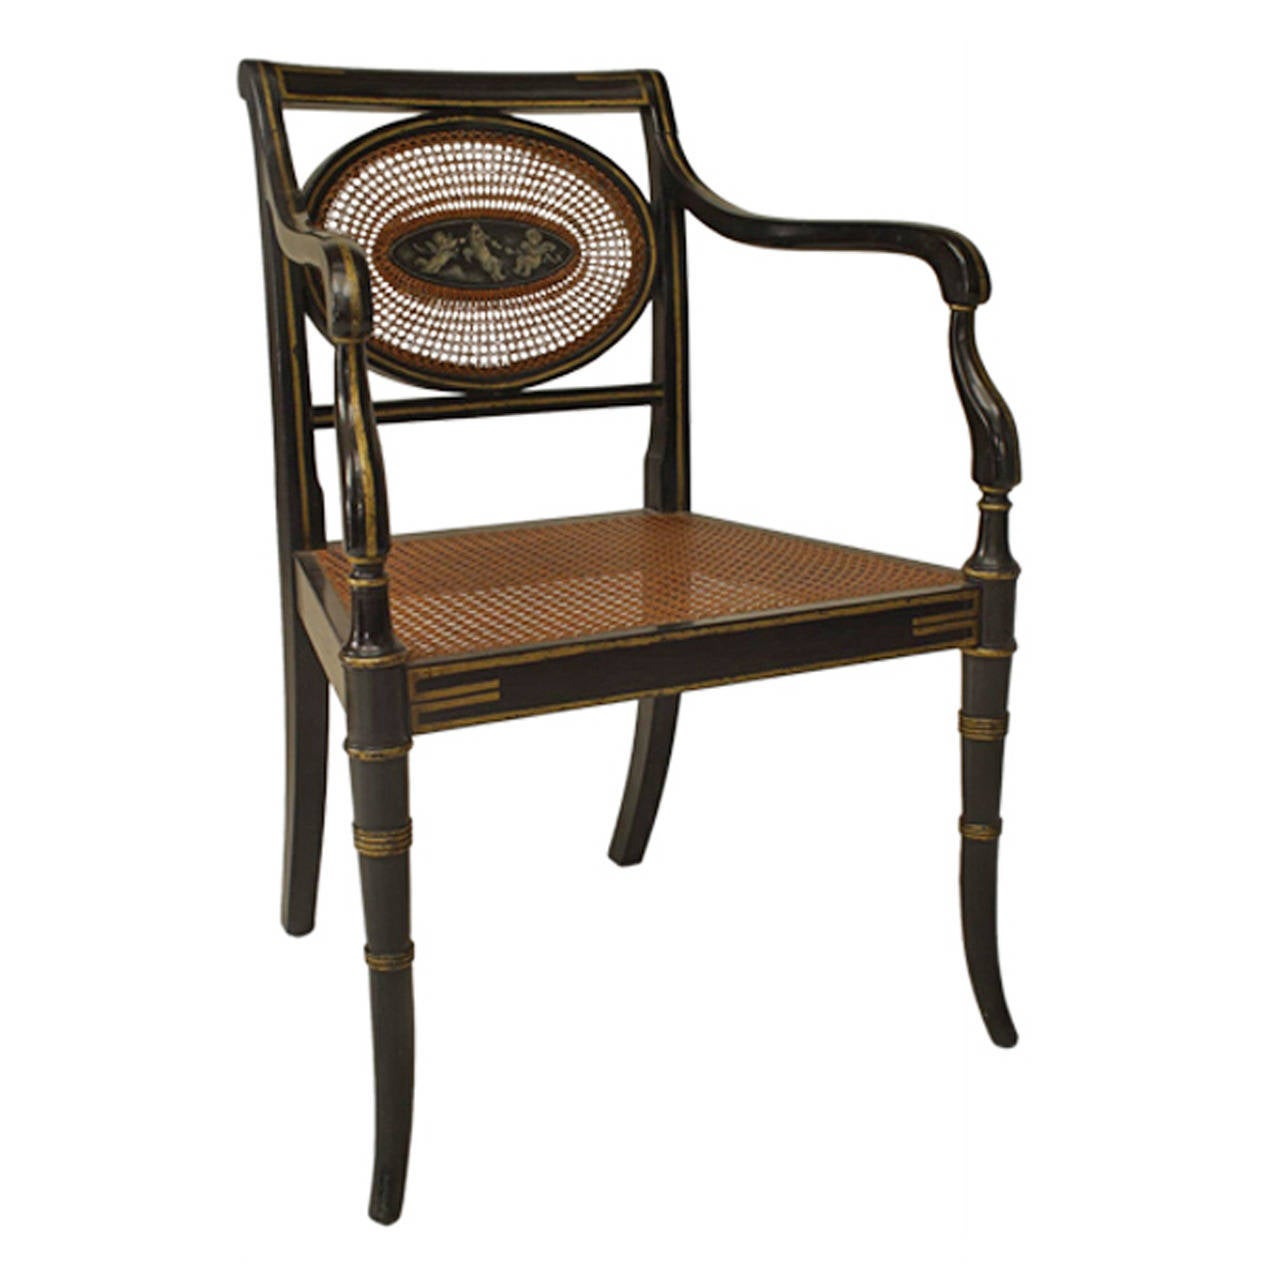 English Regency Black Lacquered And Caned Chairs For Sale